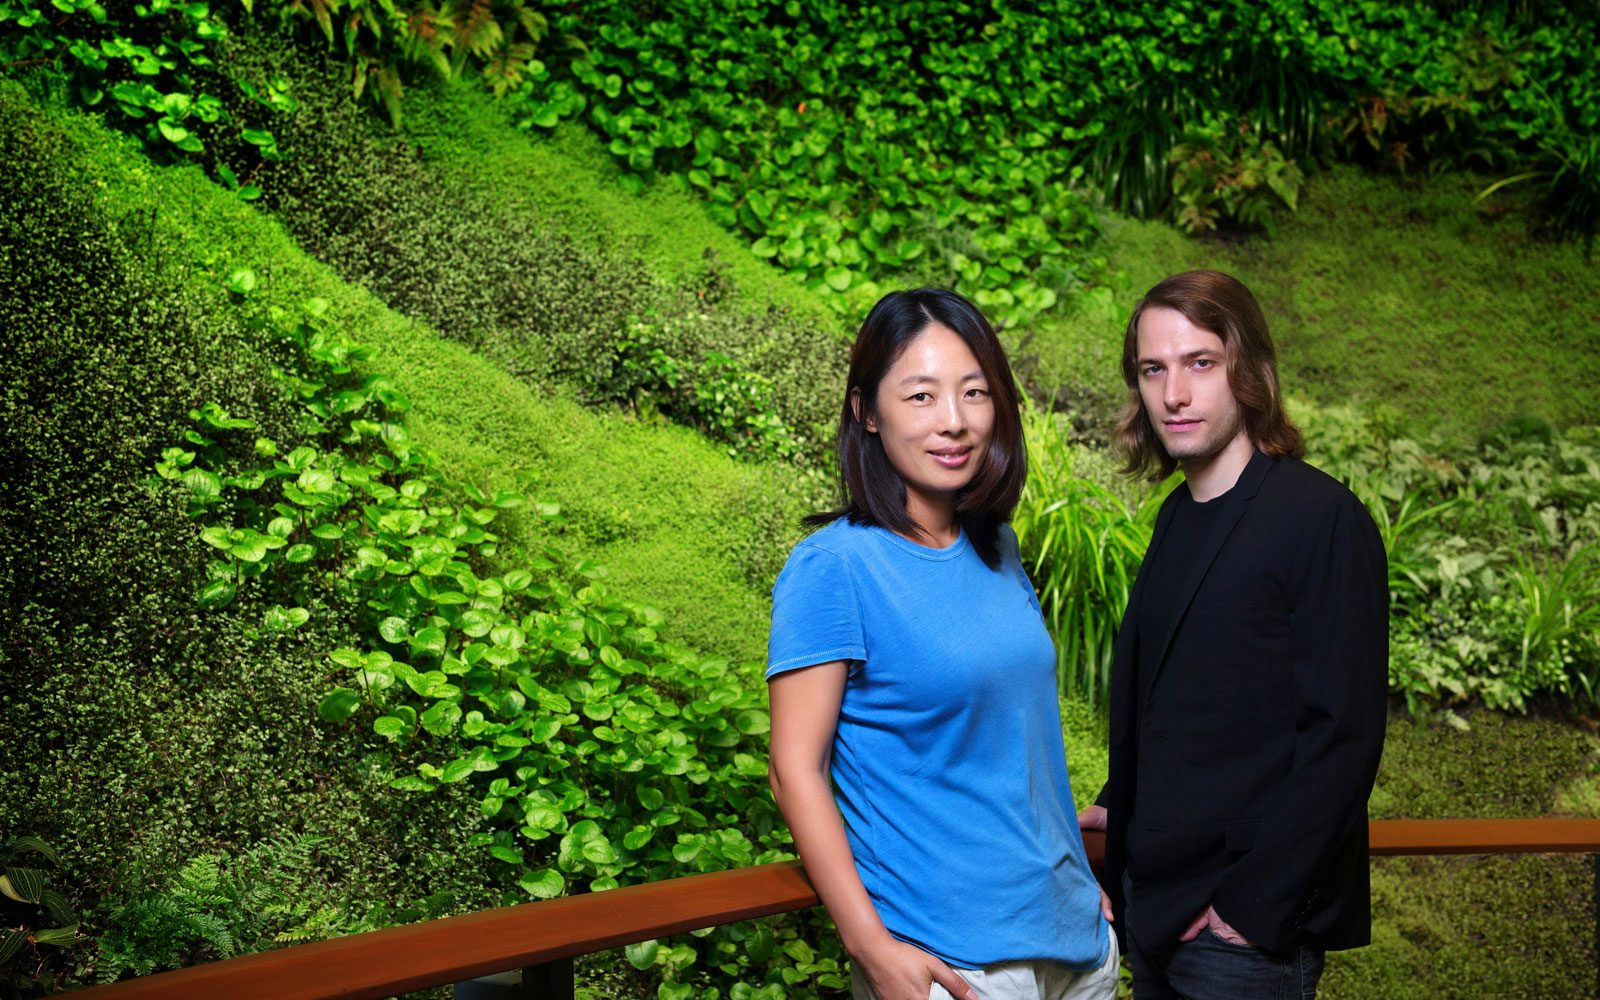 Mingzhu Nerval vertical living wall experts created the best garden design art for this private art foundation in Chengdu, 2016